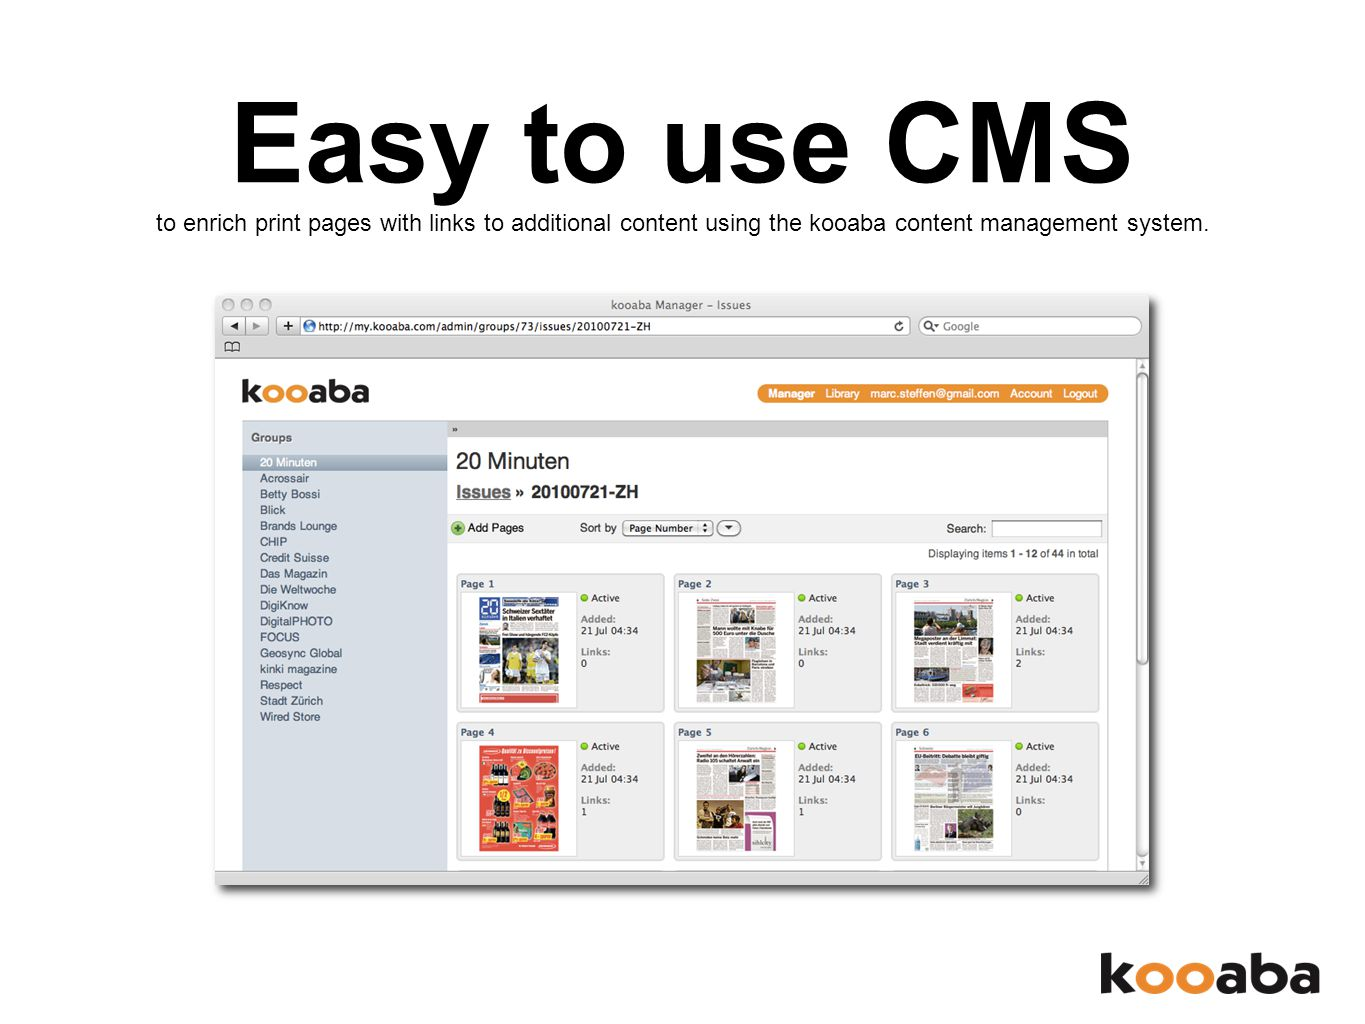 Easy to use CMS to enrich print pages with links to additional content using the kooaba content management system.